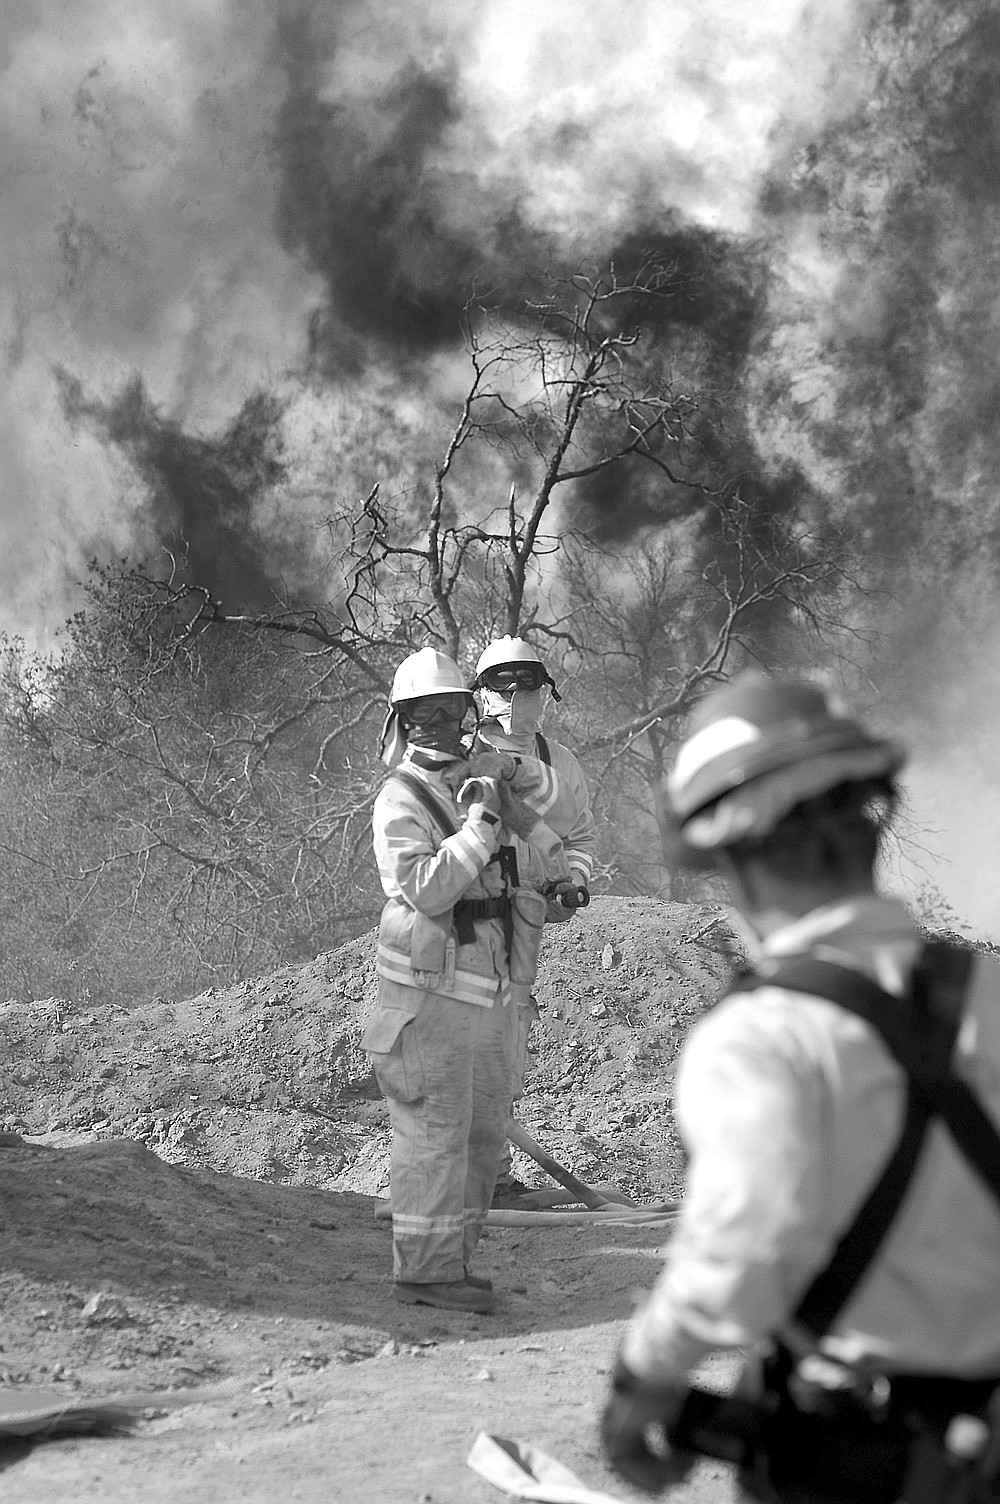 """Cedar fire, Julian.  """"Some firemen did drive by. John asked them, 'Will you come back and help us?' They said, 'Don't count on a truck being there.'"""""""